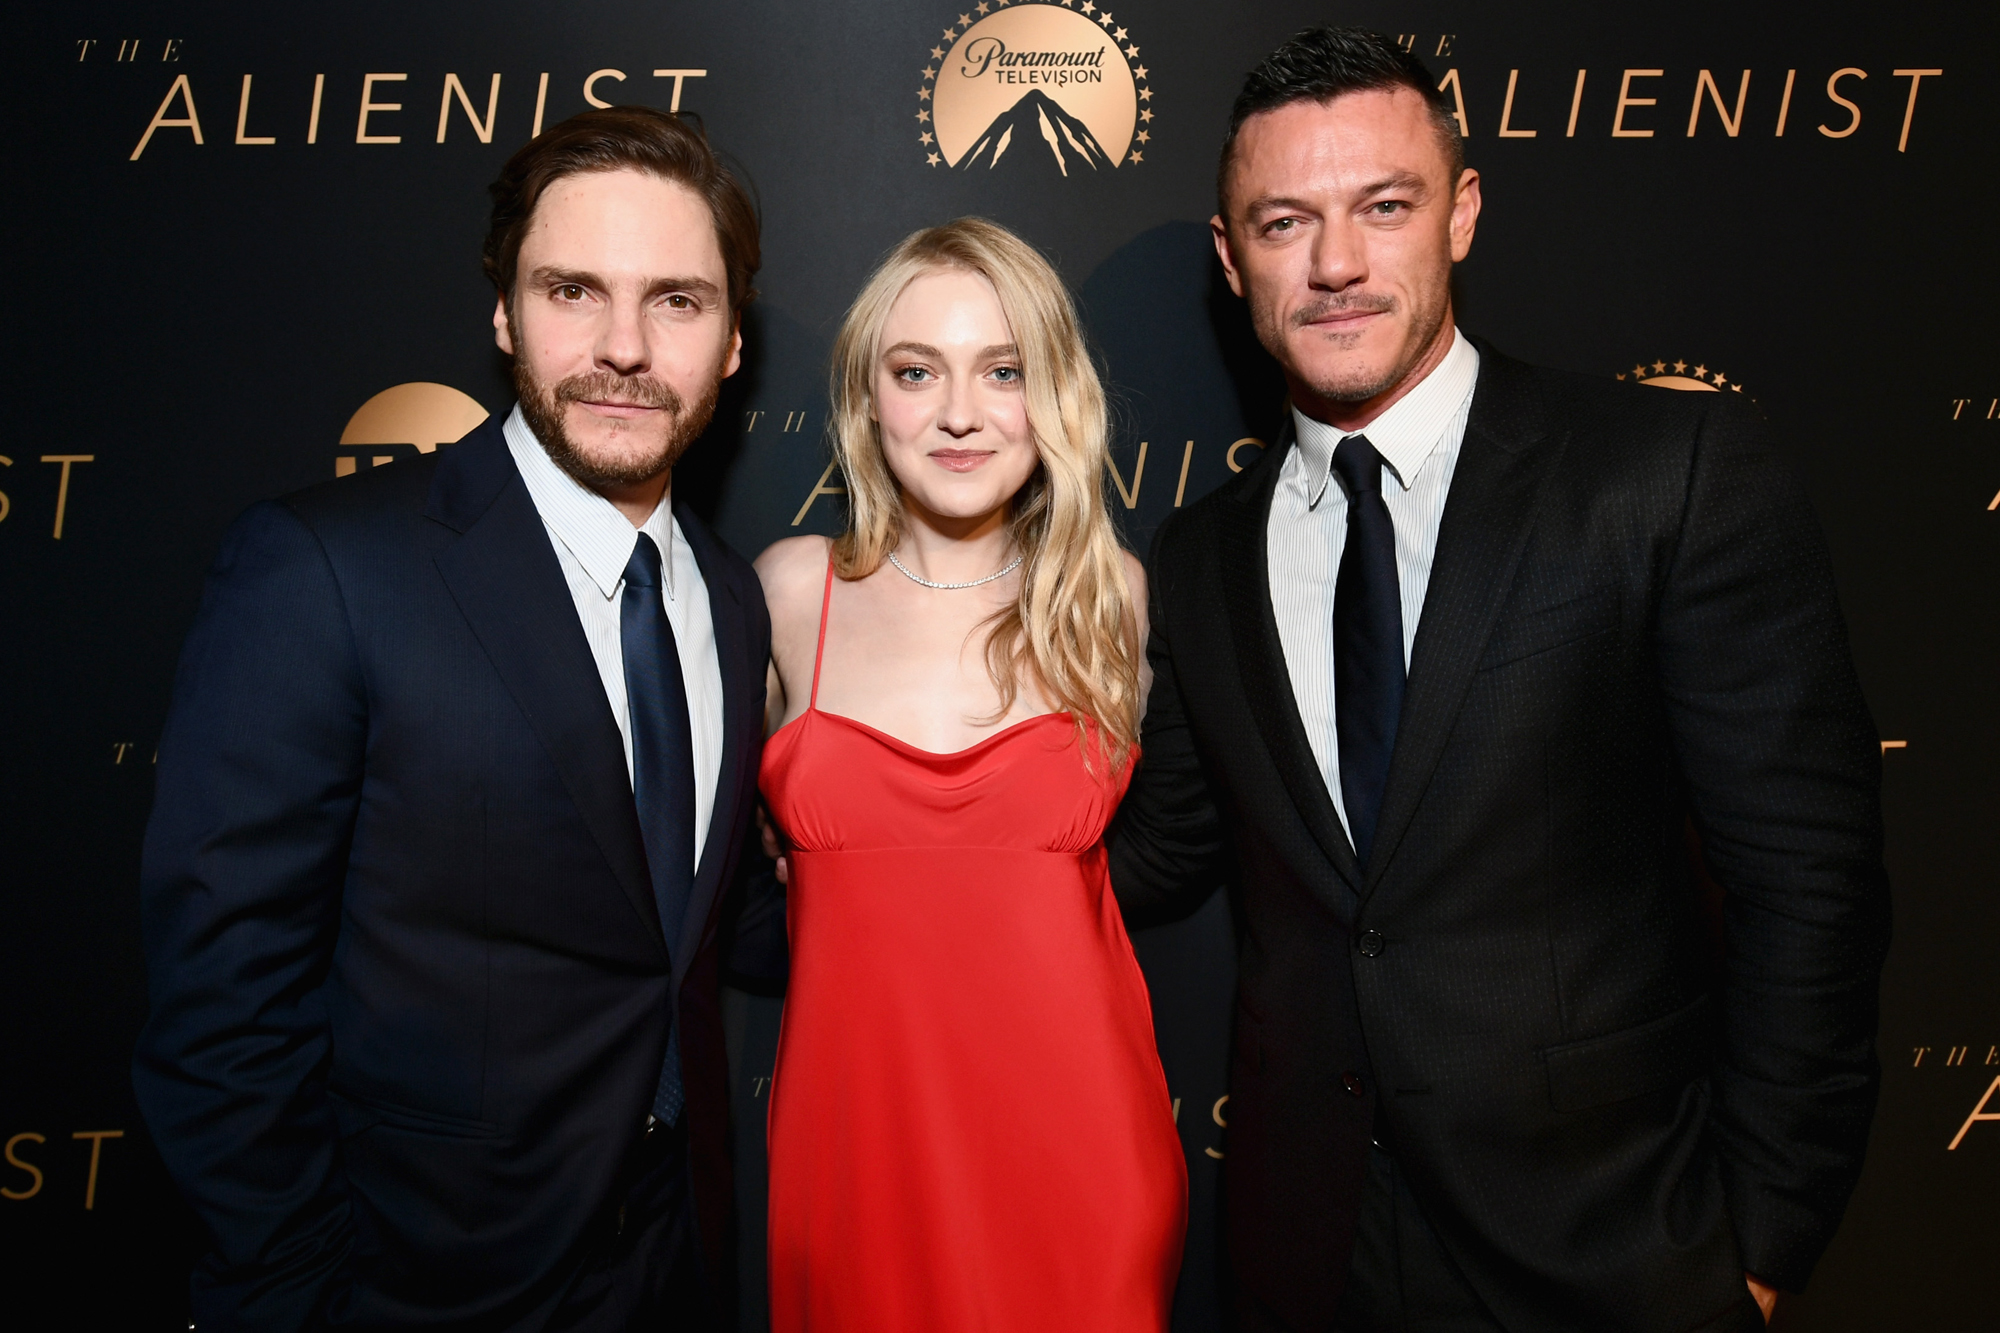 The Alienist Cast On The Bizarre Thing That Happened The First Day Of Filming Ew Com